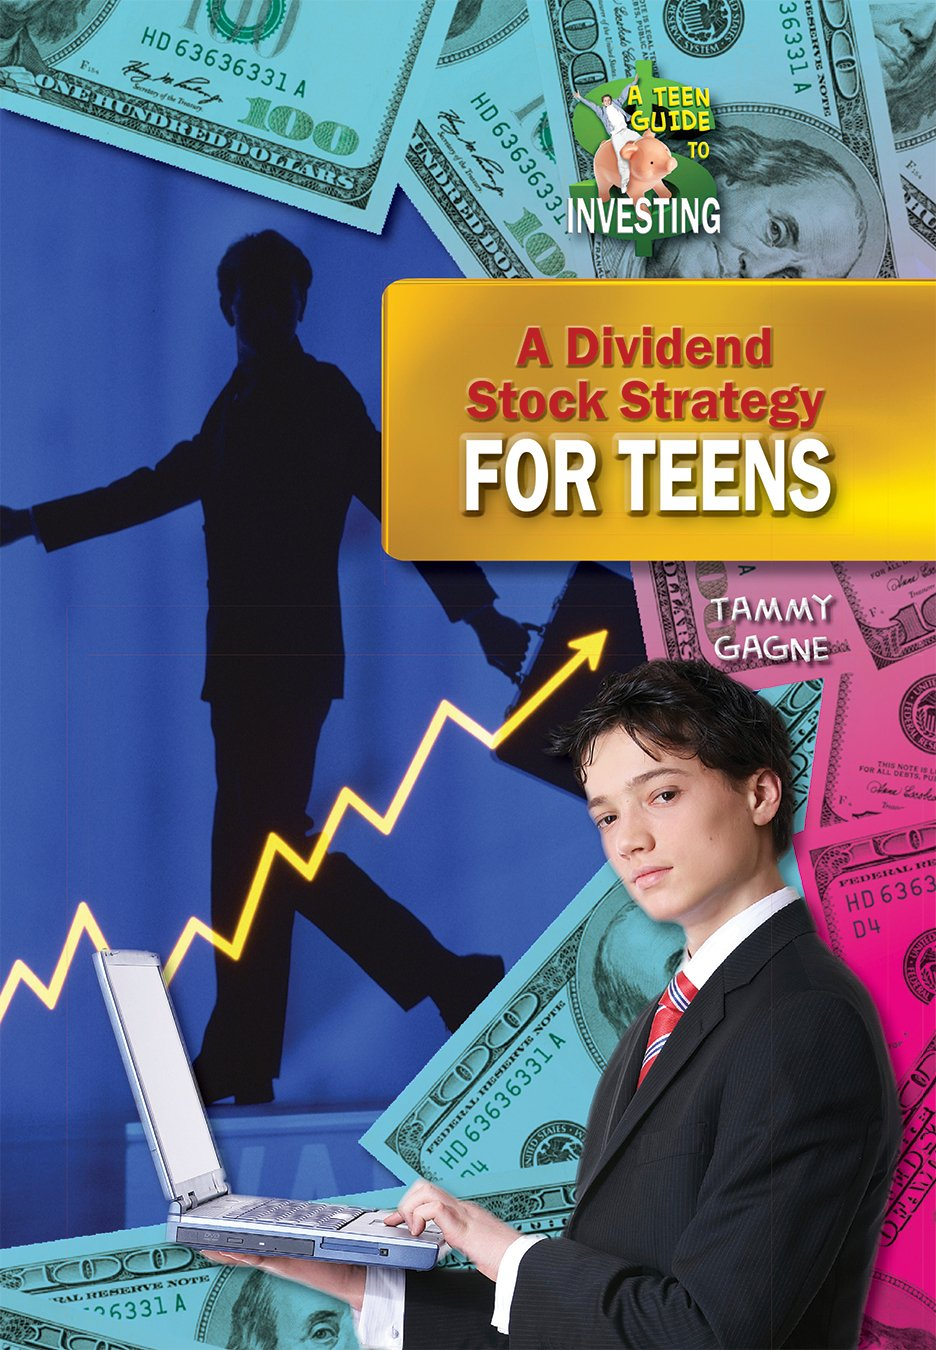 A Dividend Stock Strategy for Teens (A Teen Guide to Investing) ebook